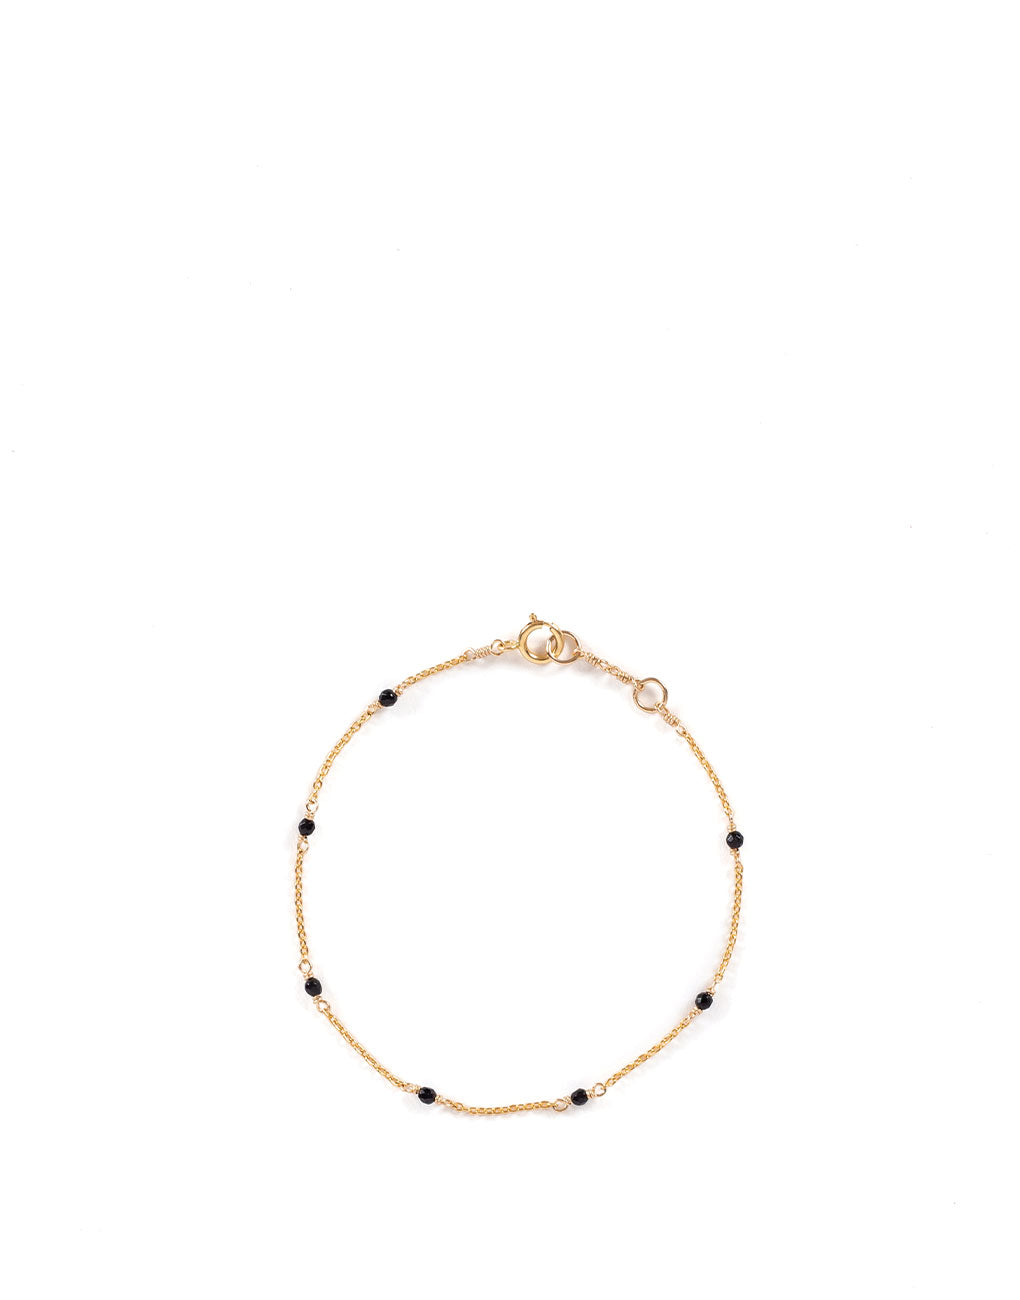 Dainty Gemstone Bracelet - Onyx | The Little Market